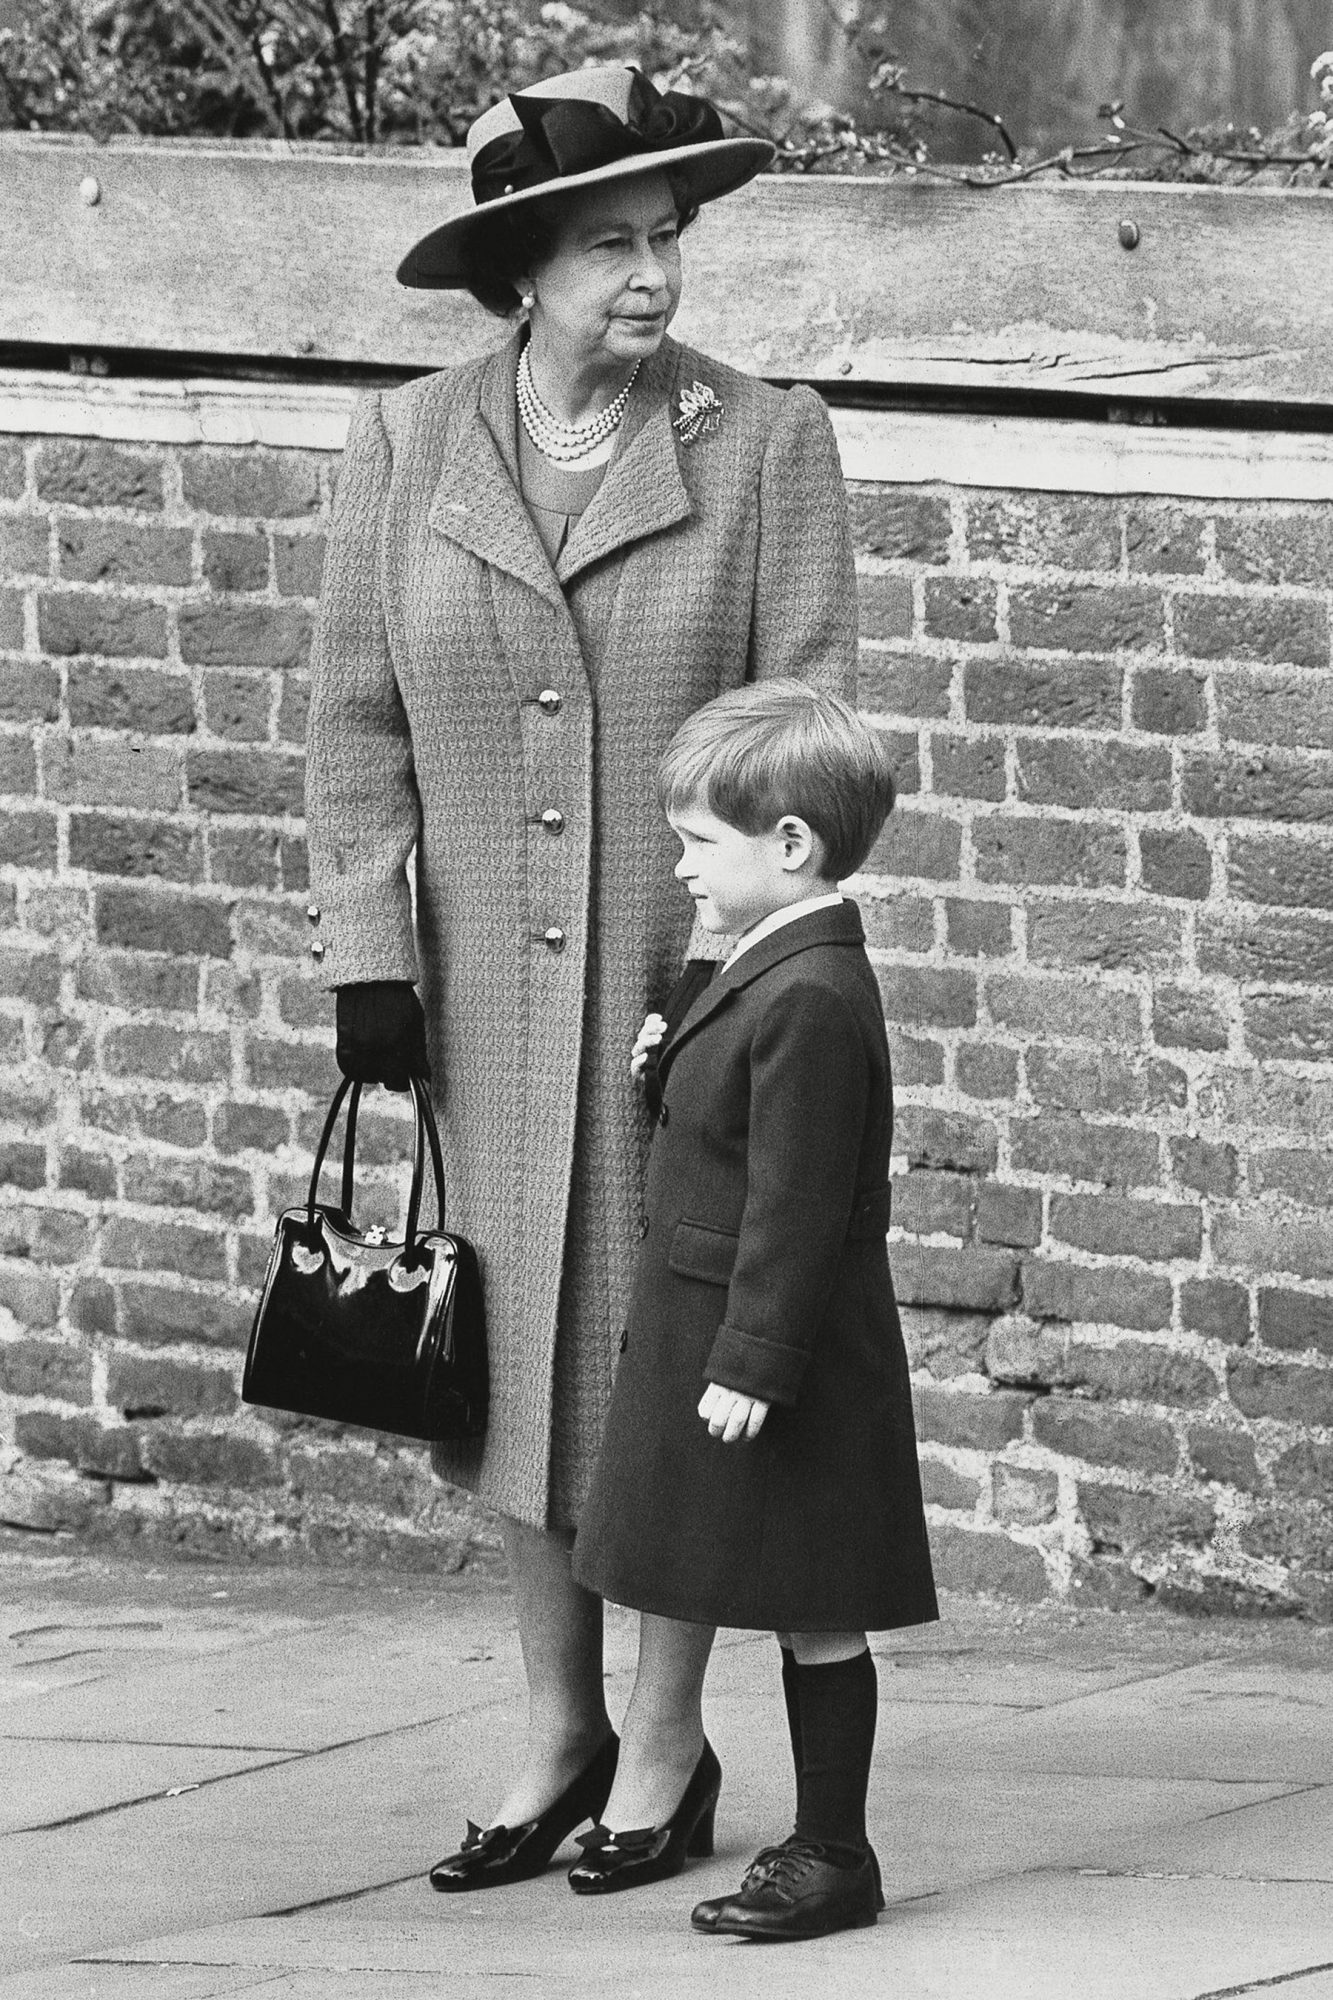 Queen Elizabeth Ii With Her Grandson Prince Harry. Easter Sunday Service At St. Georges Chapel At Windsor Castle. A Proud Young Man Holds Tightly To His Grandmother's Hand After Easter Sunday Morning Srvice. Prince Harry Aged Four Smart In A Maroon